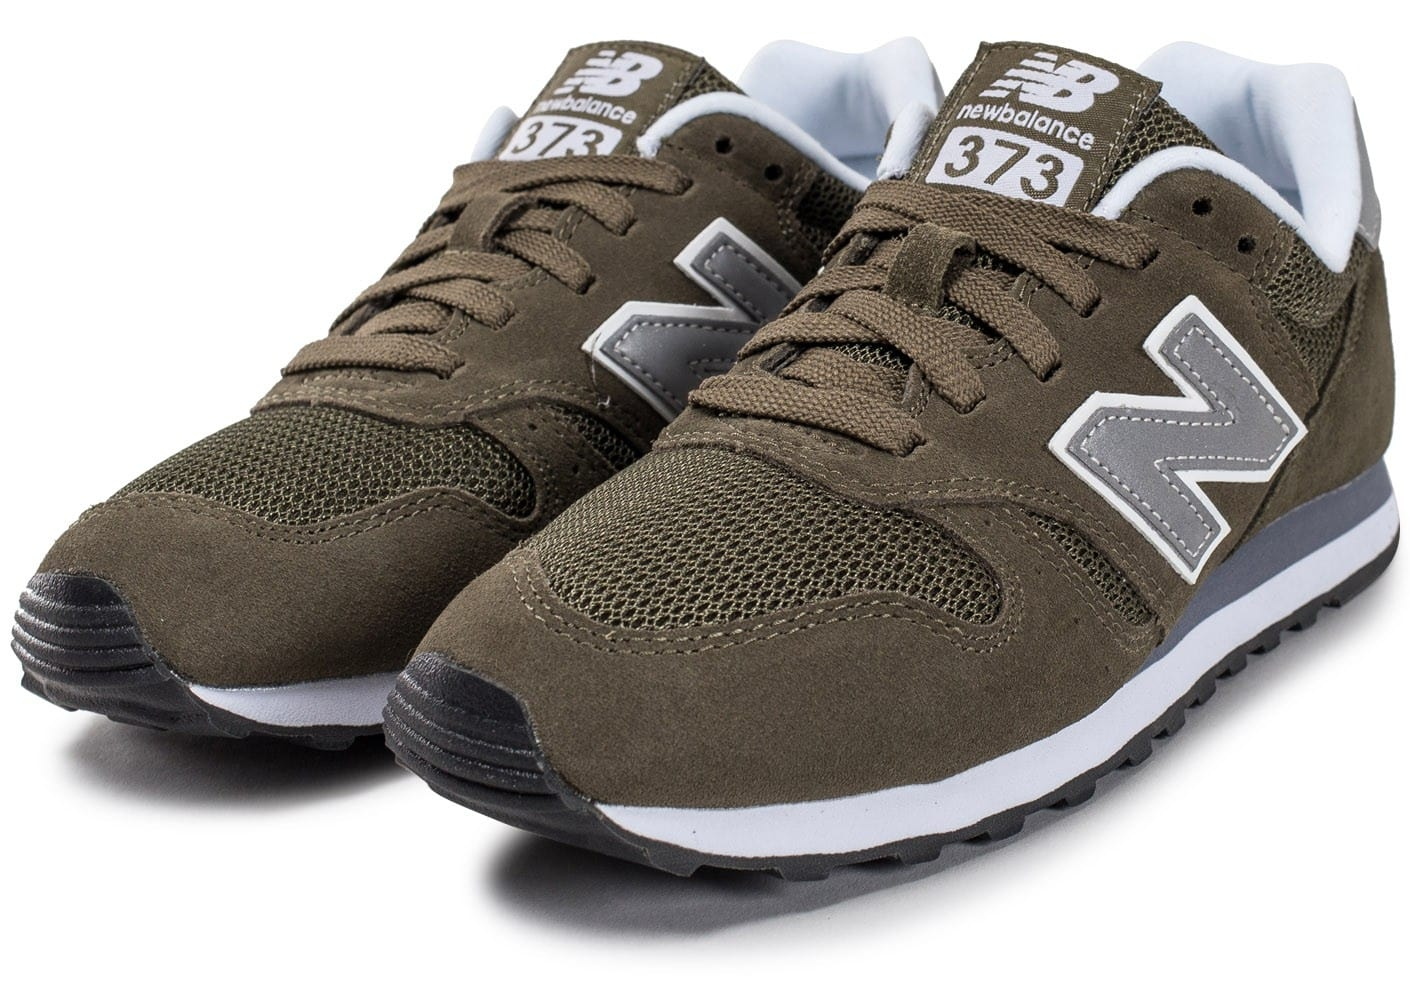 new balance ml373 olv kaki chaussures black friday chausport. Black Bedroom Furniture Sets. Home Design Ideas